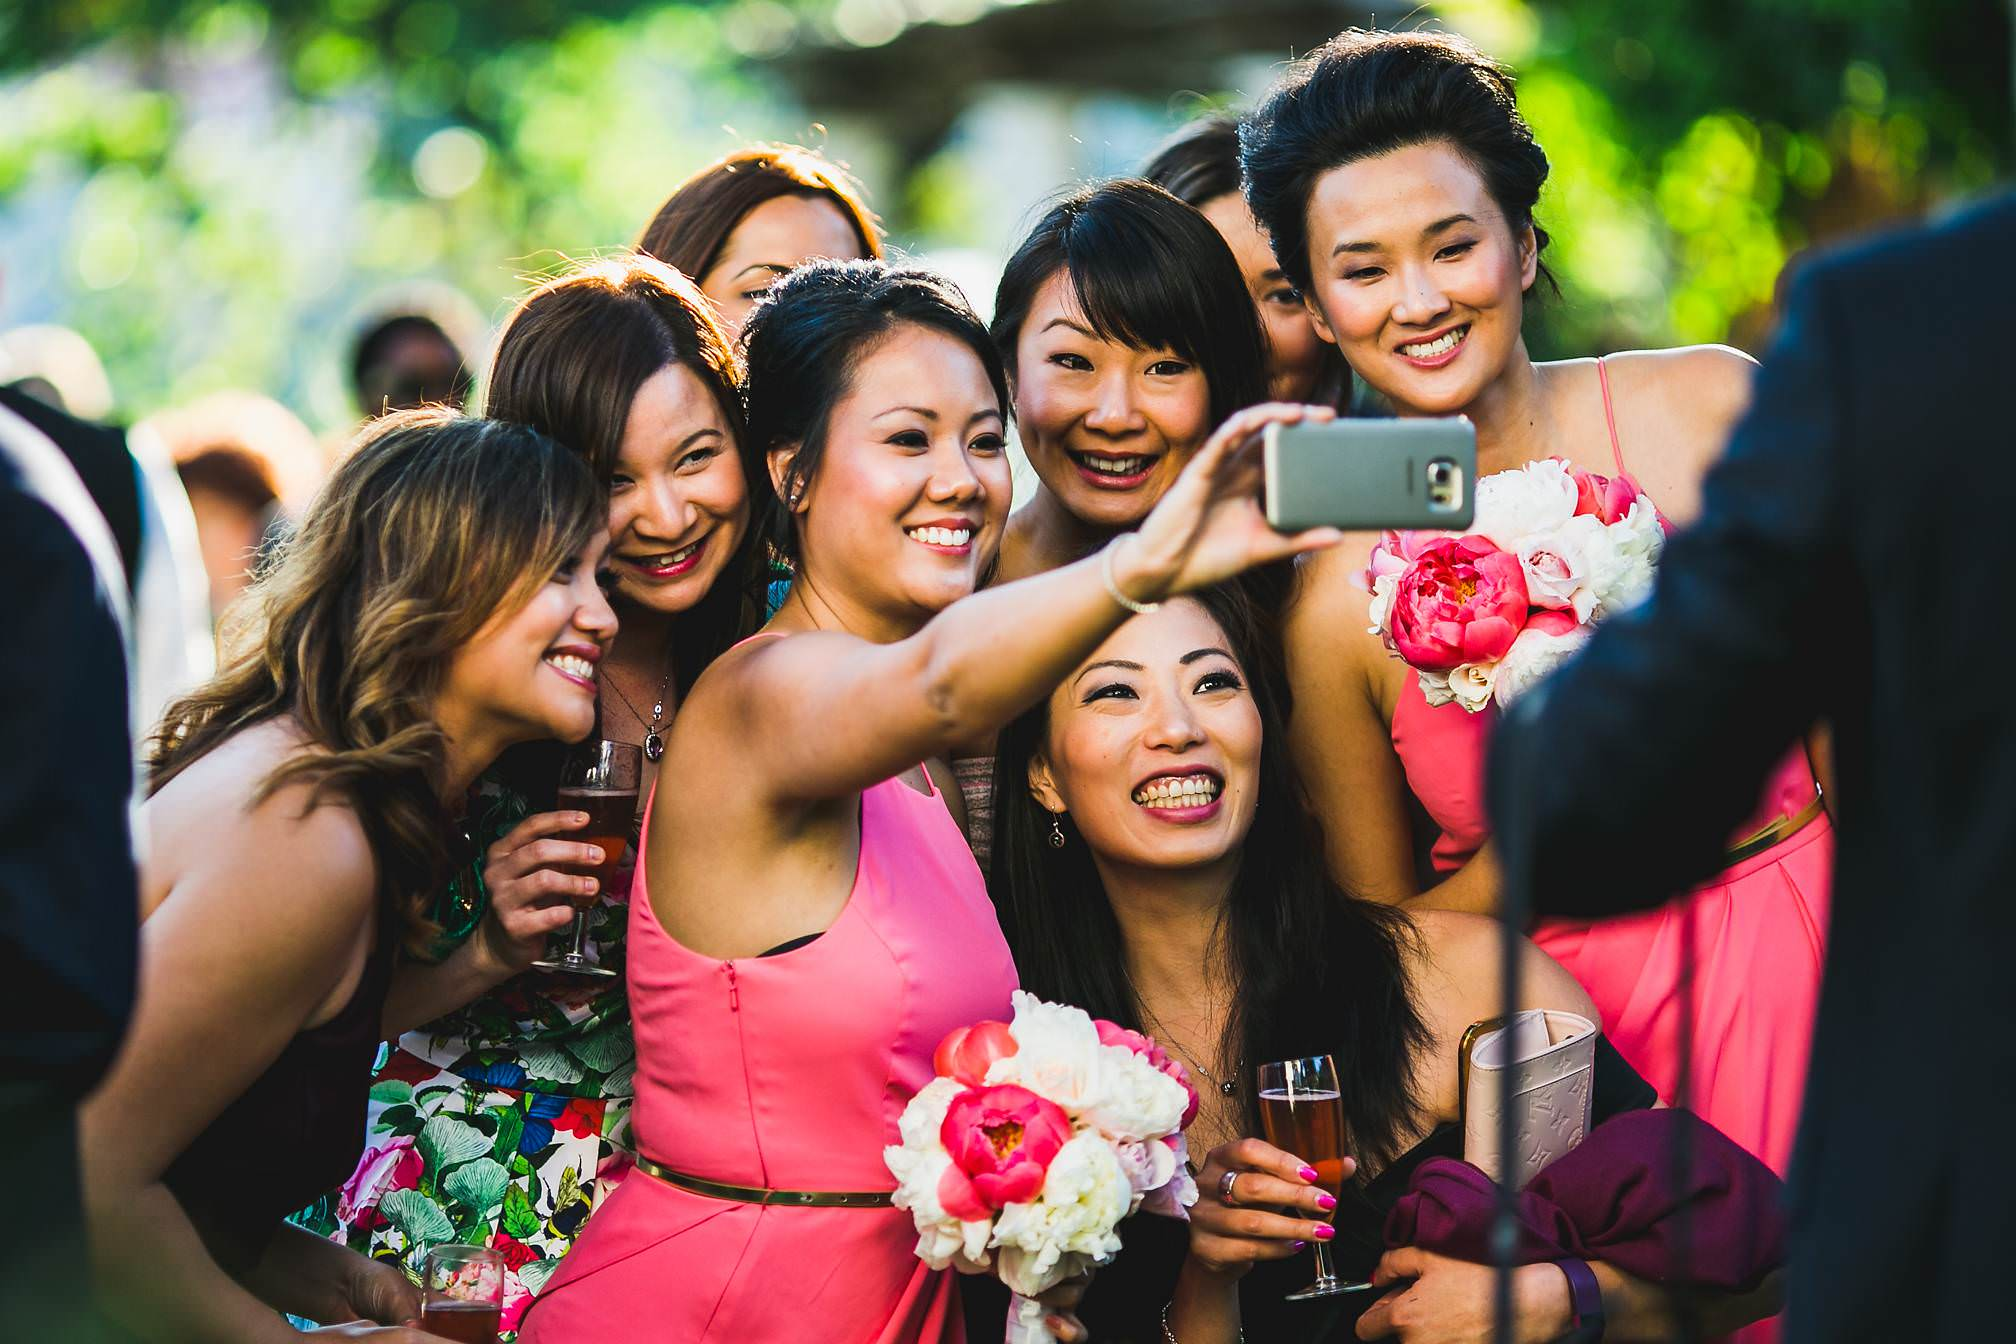 Huge Wedding Selfie